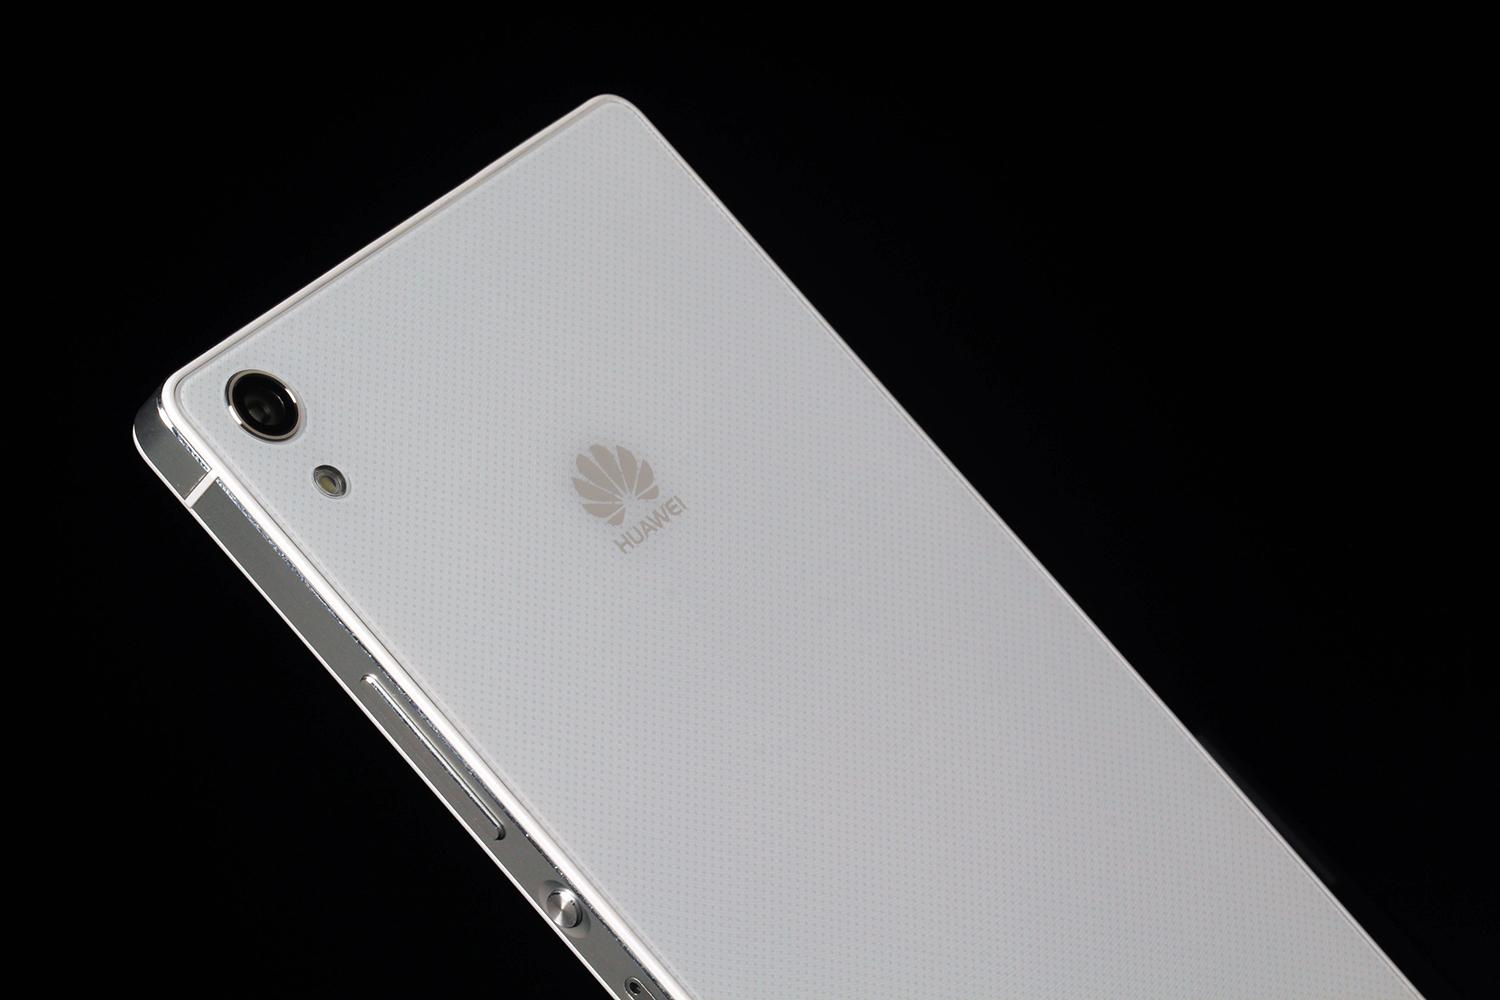 Huawei ascend p8 news specs release date price digital trends